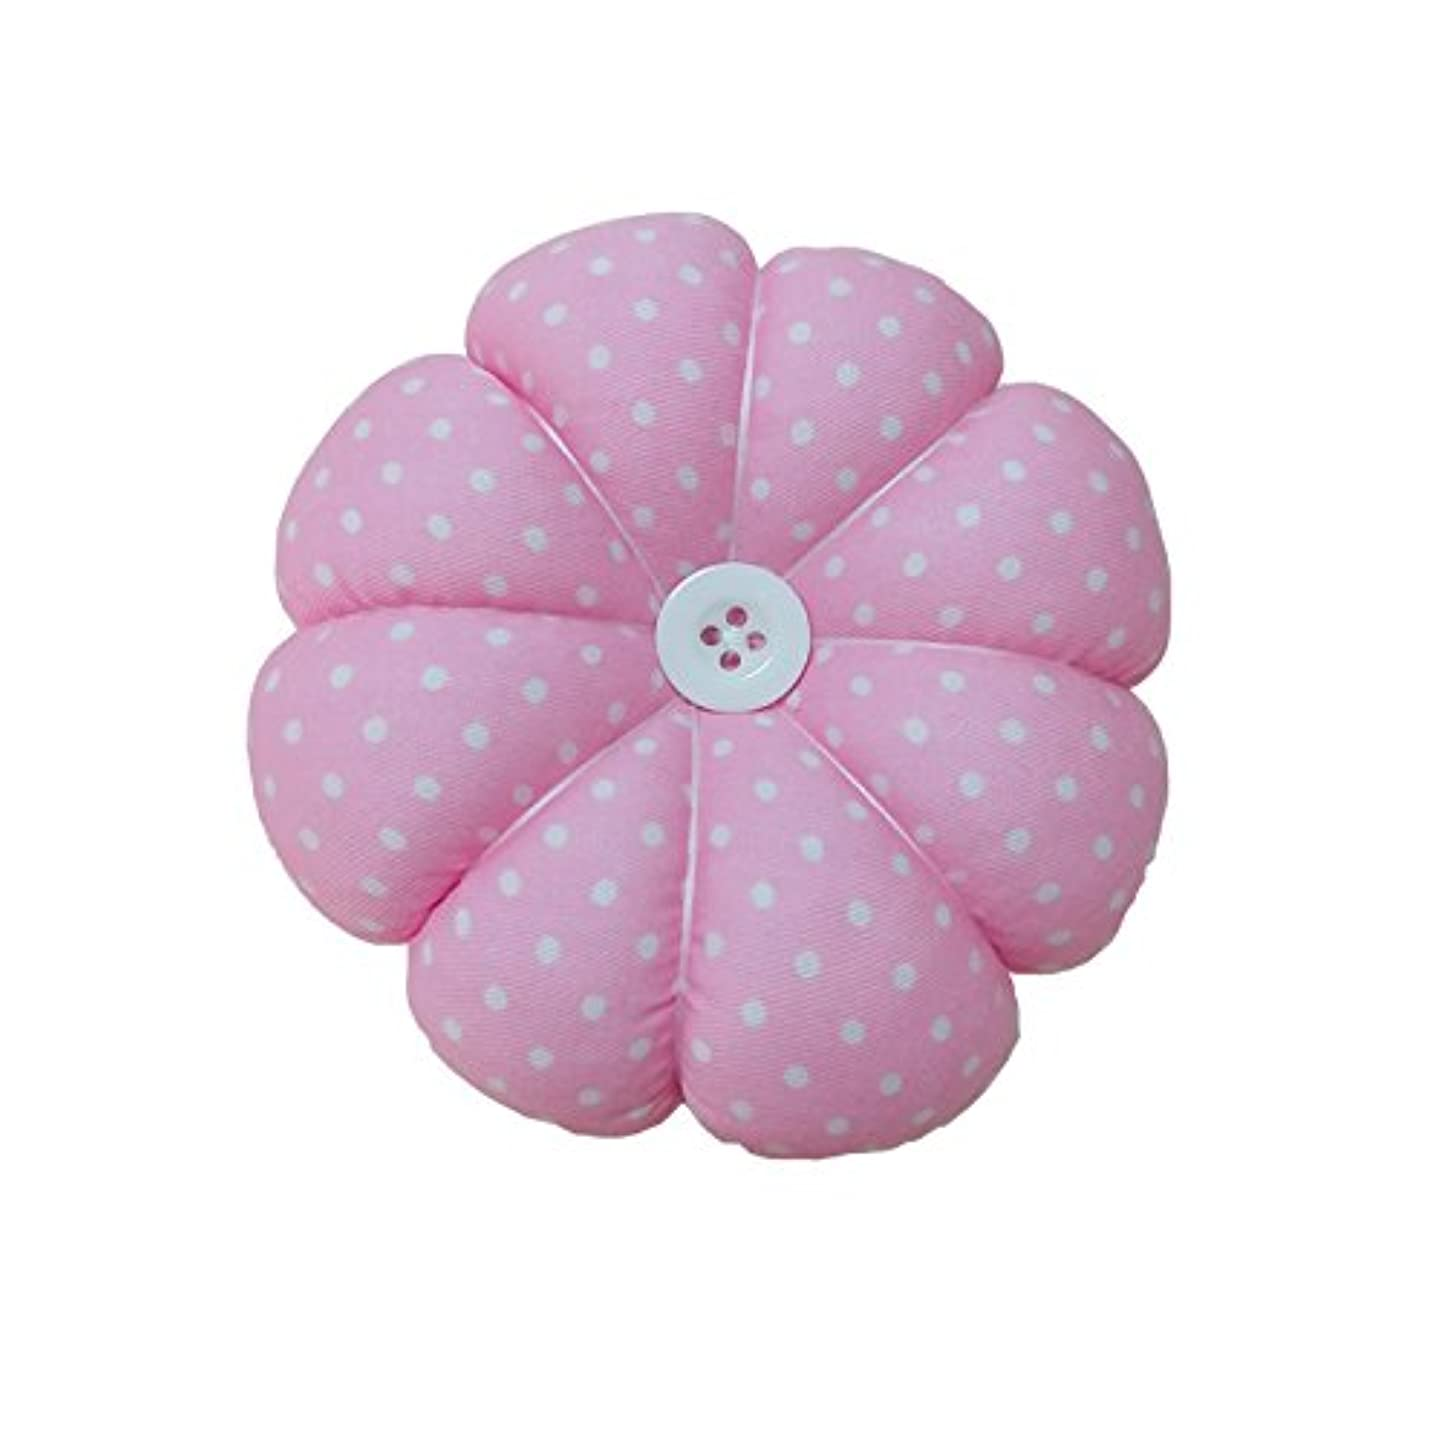 Besplore Upgrade Pin Cushion Polka Pumpkin Wrist Pin Cushions Wearable Needle Pincushions,Pink